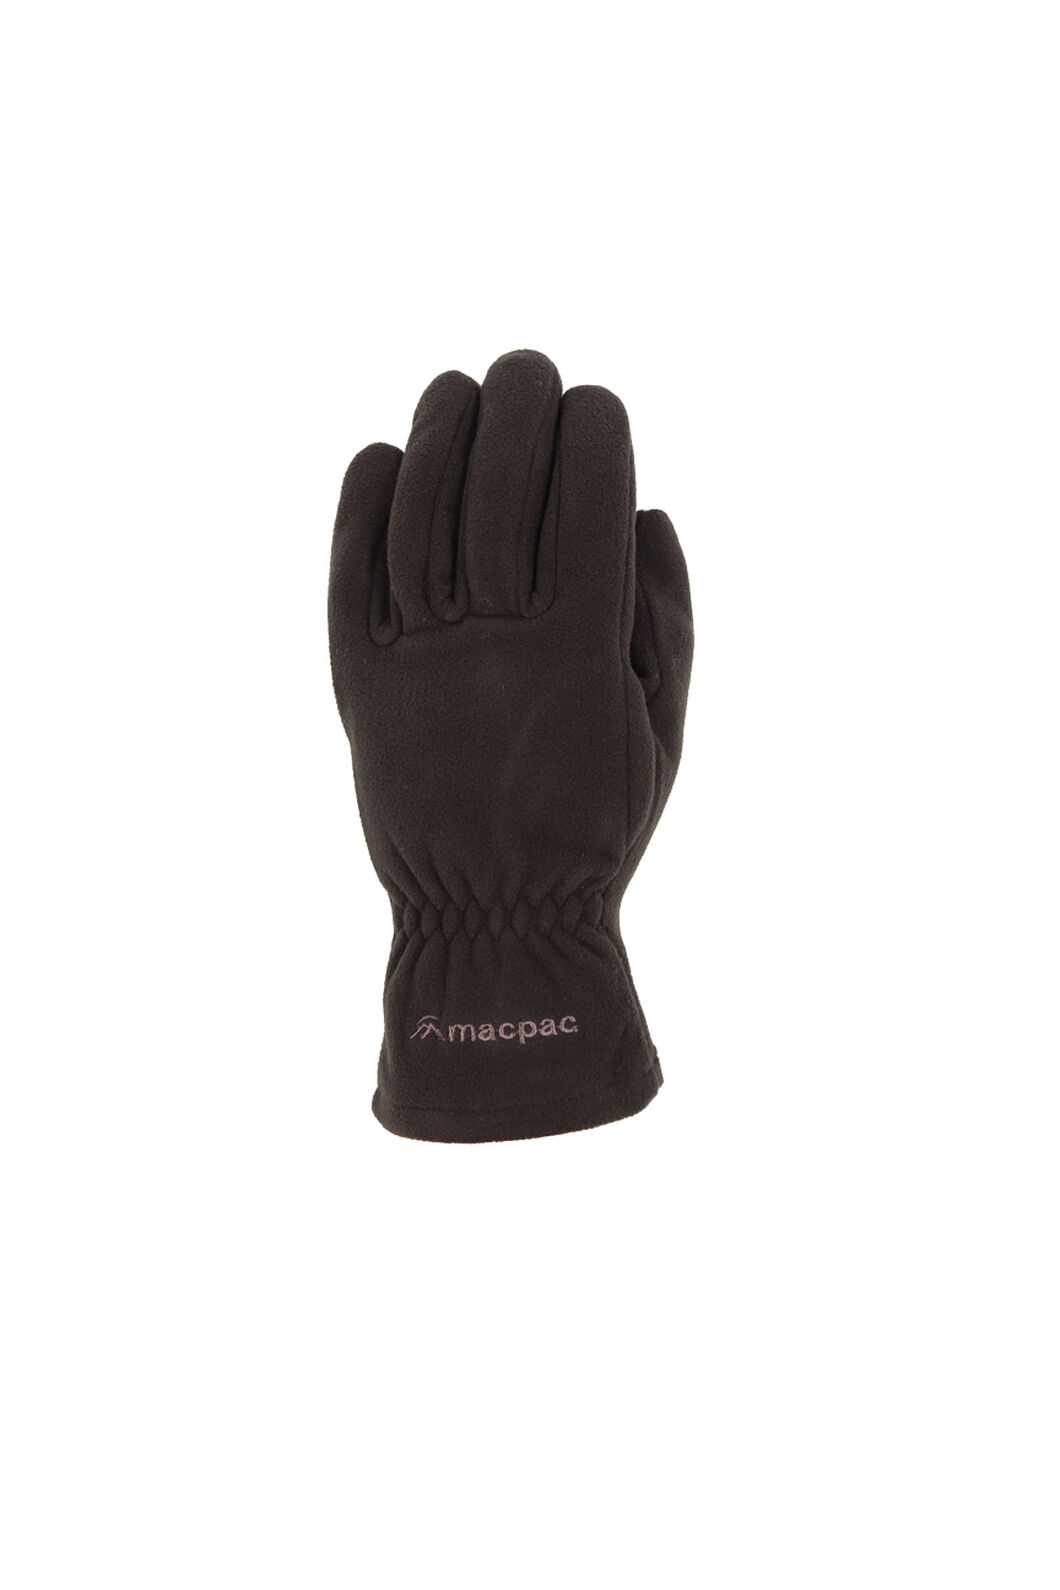 Macpac Tech Fleece Gloves, Black, hi-res